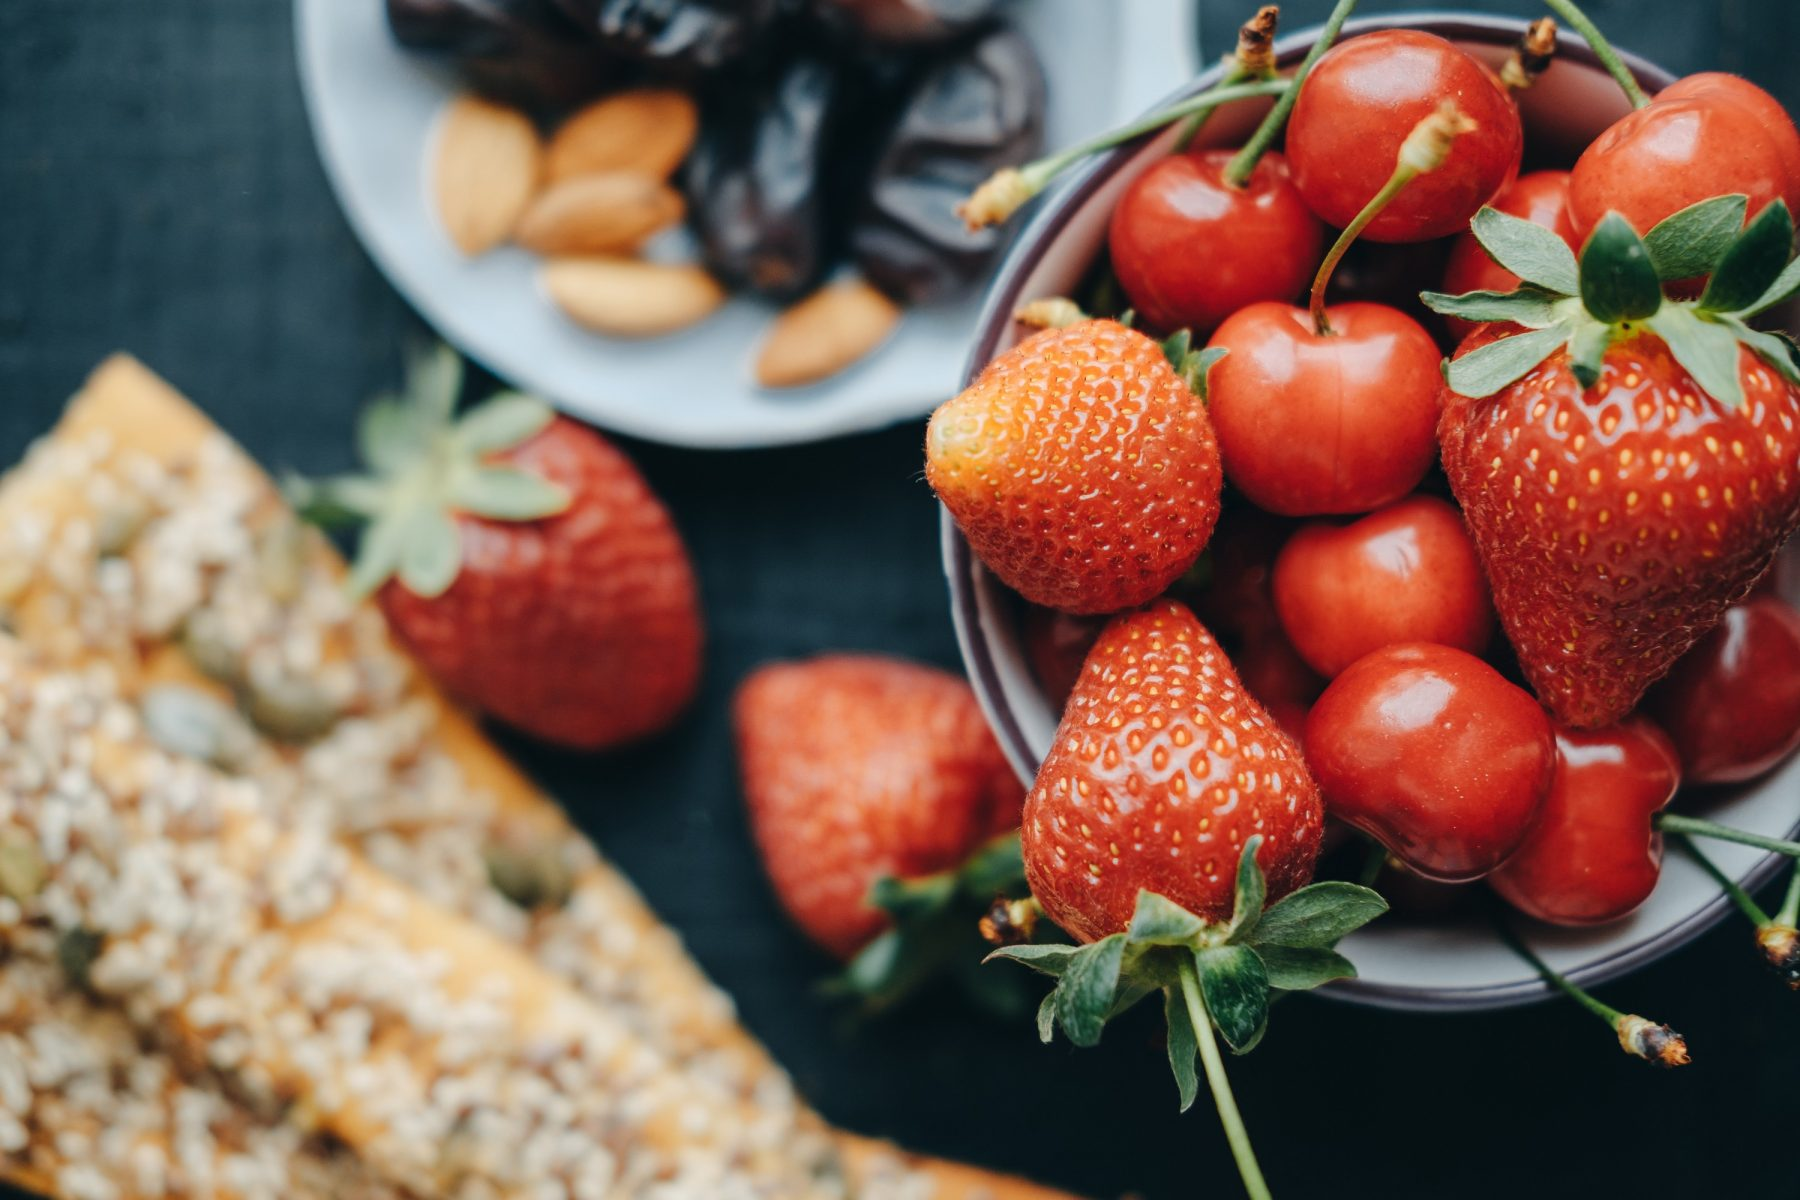 Healthy snack options in Dallas Fort worth